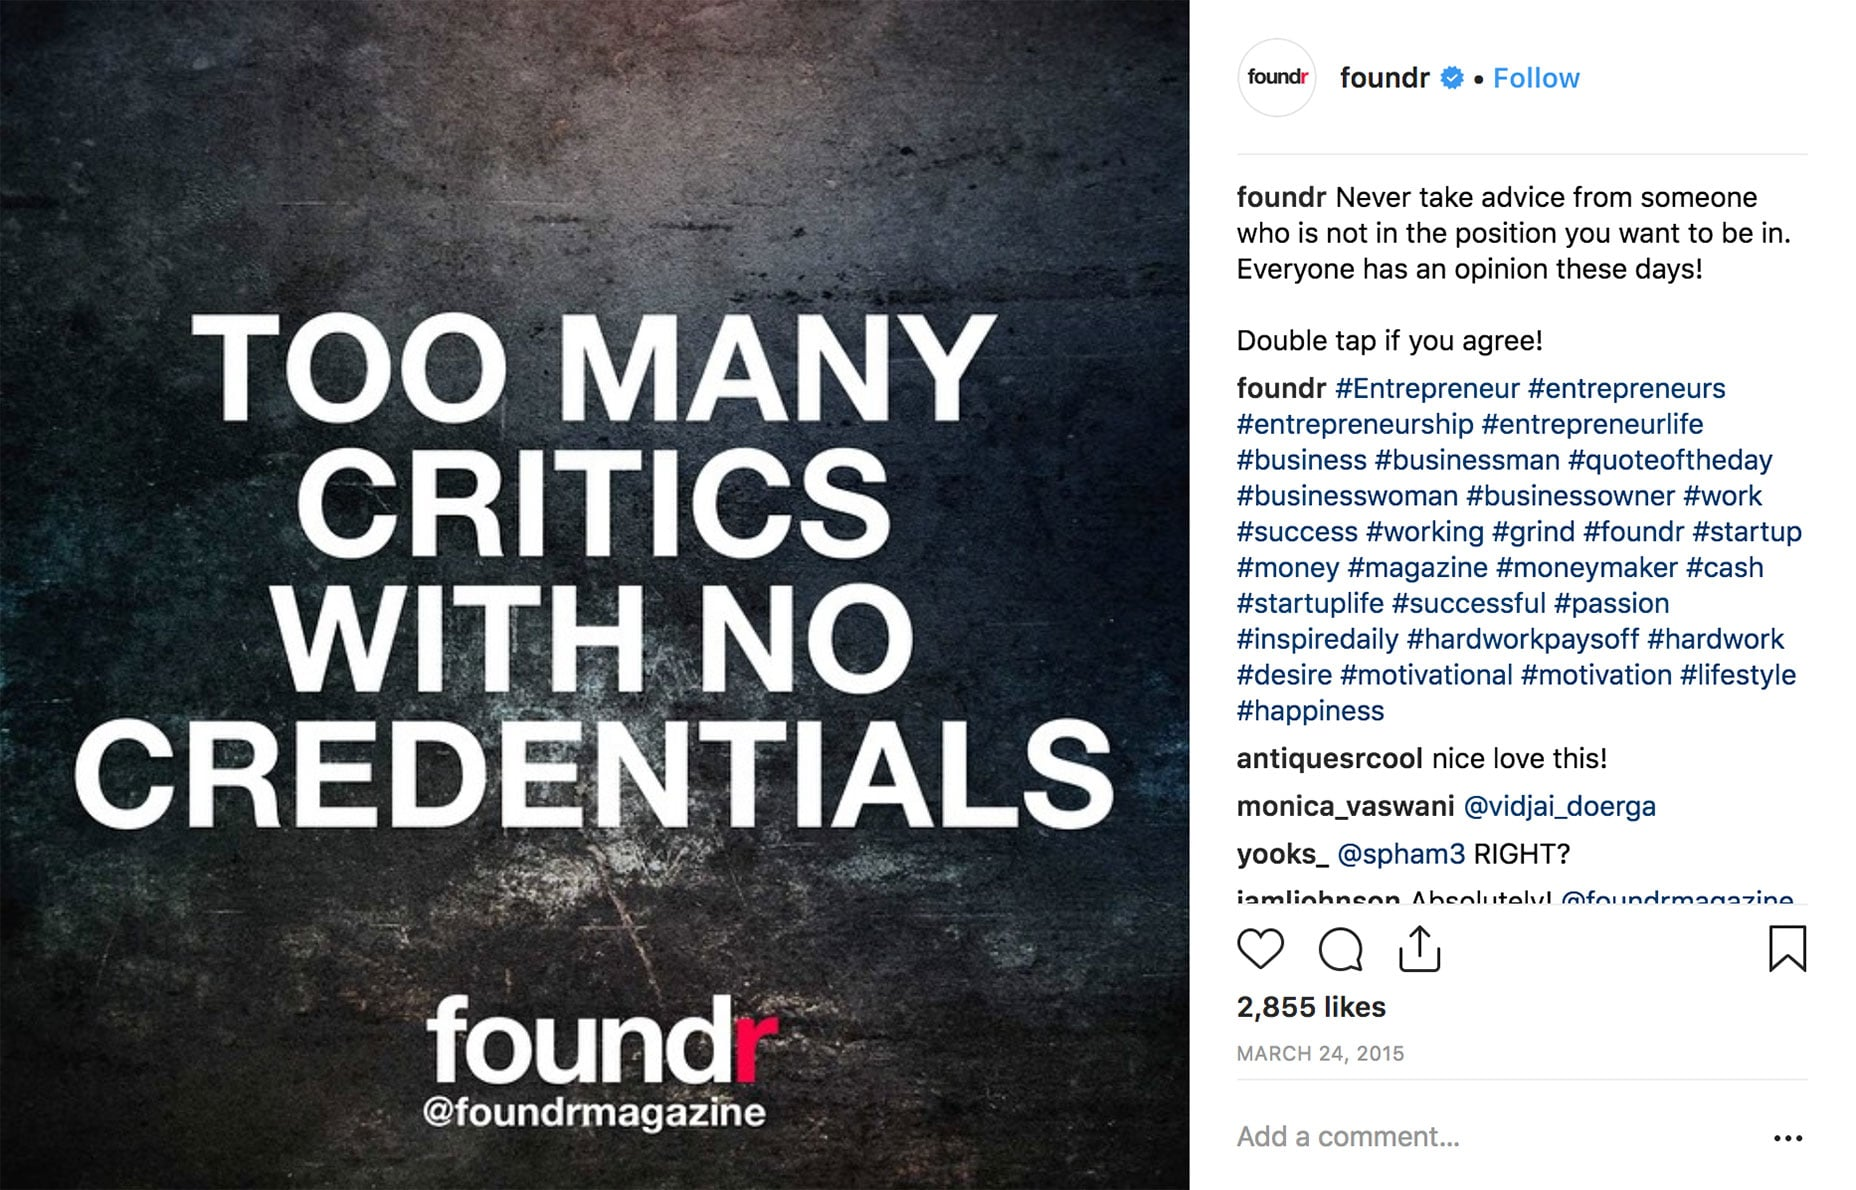 Foundr Uses Hashtags in Comments